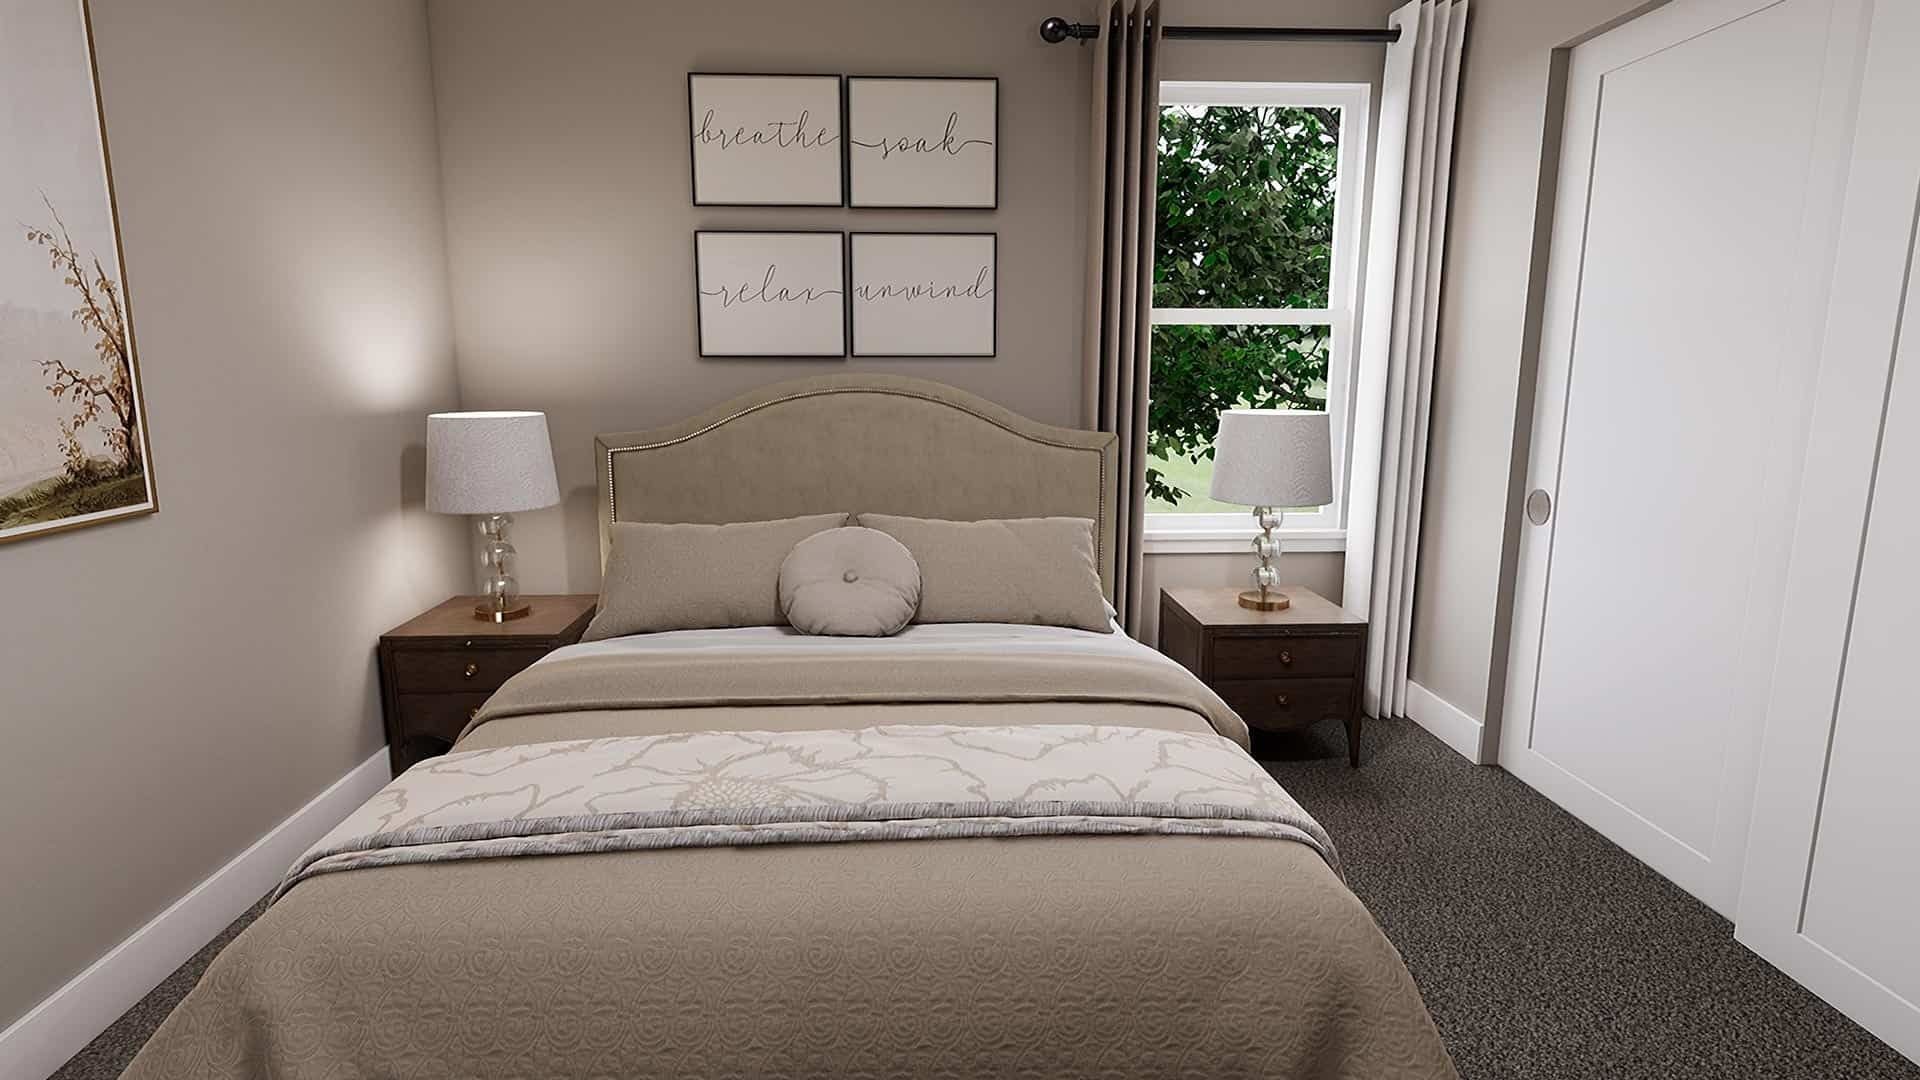 Bedroom featured in the Plan A-220 By Tri Pointe Homes in Bremerton, WA